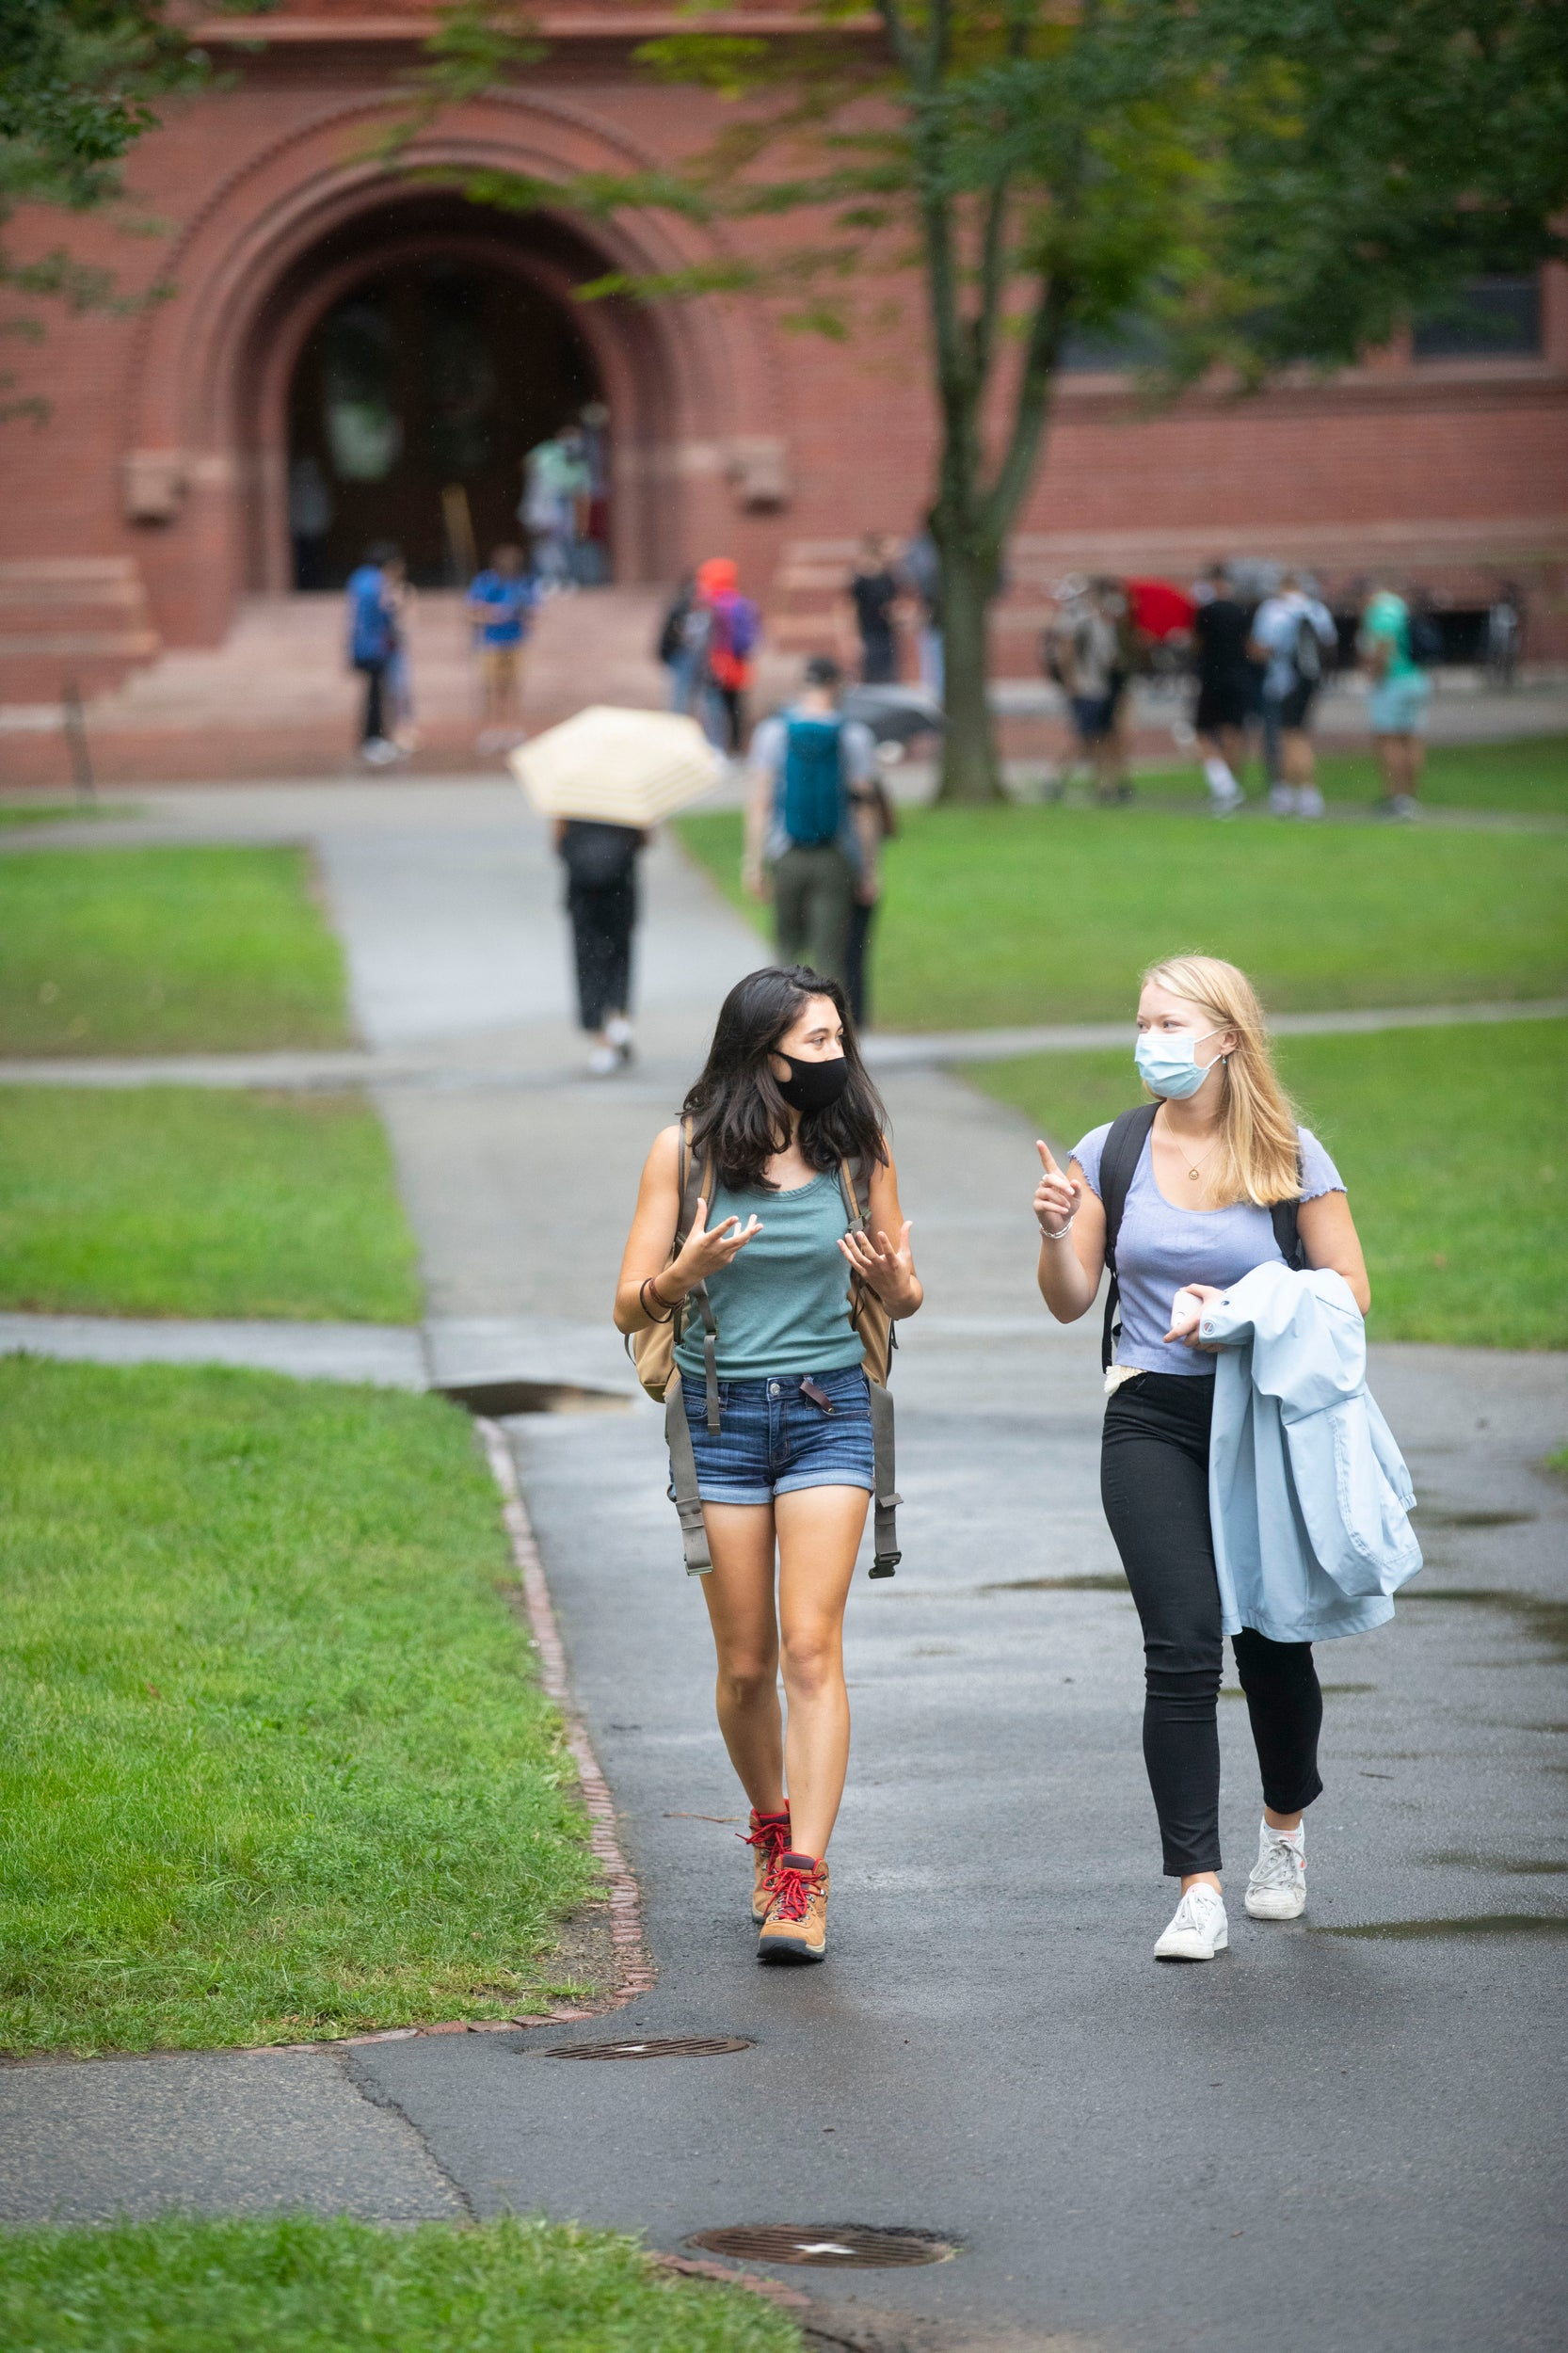 Two students wearing masks talk while walking on campus